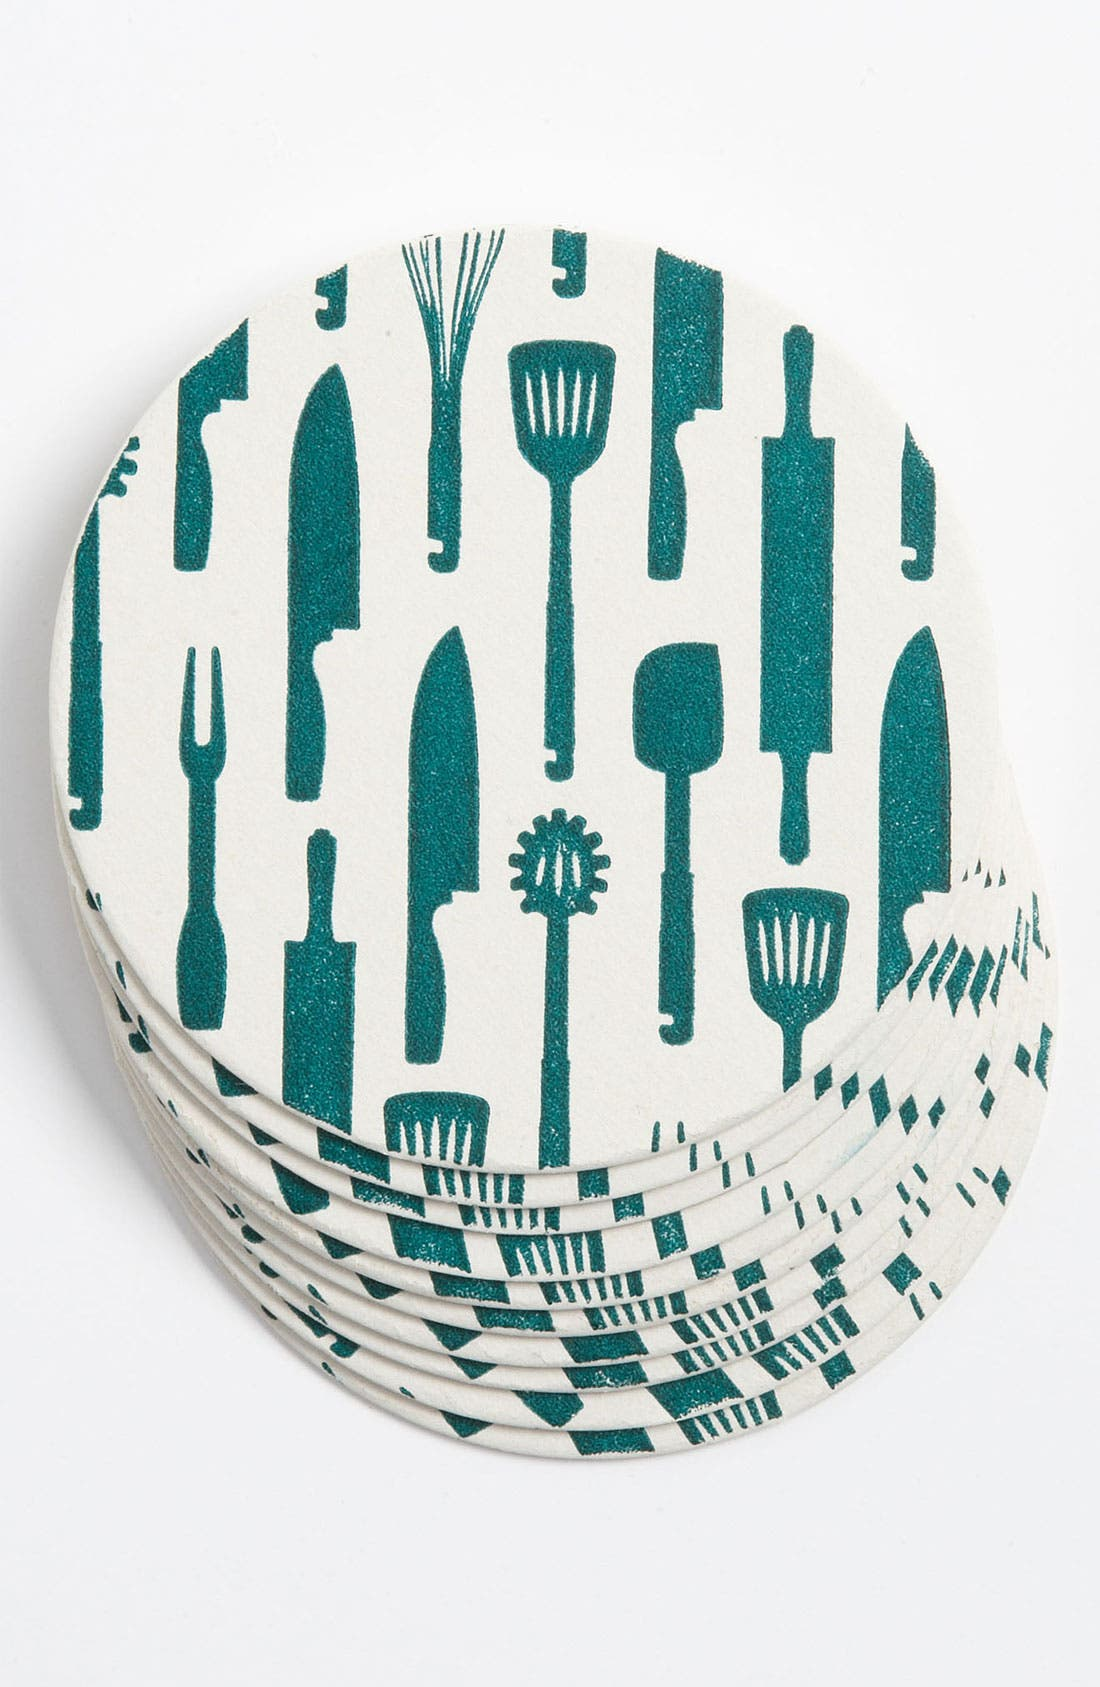 Alternate Image 1 Selected - 'Kitchen Utensils' Letterpress Coasters (Set of 10)